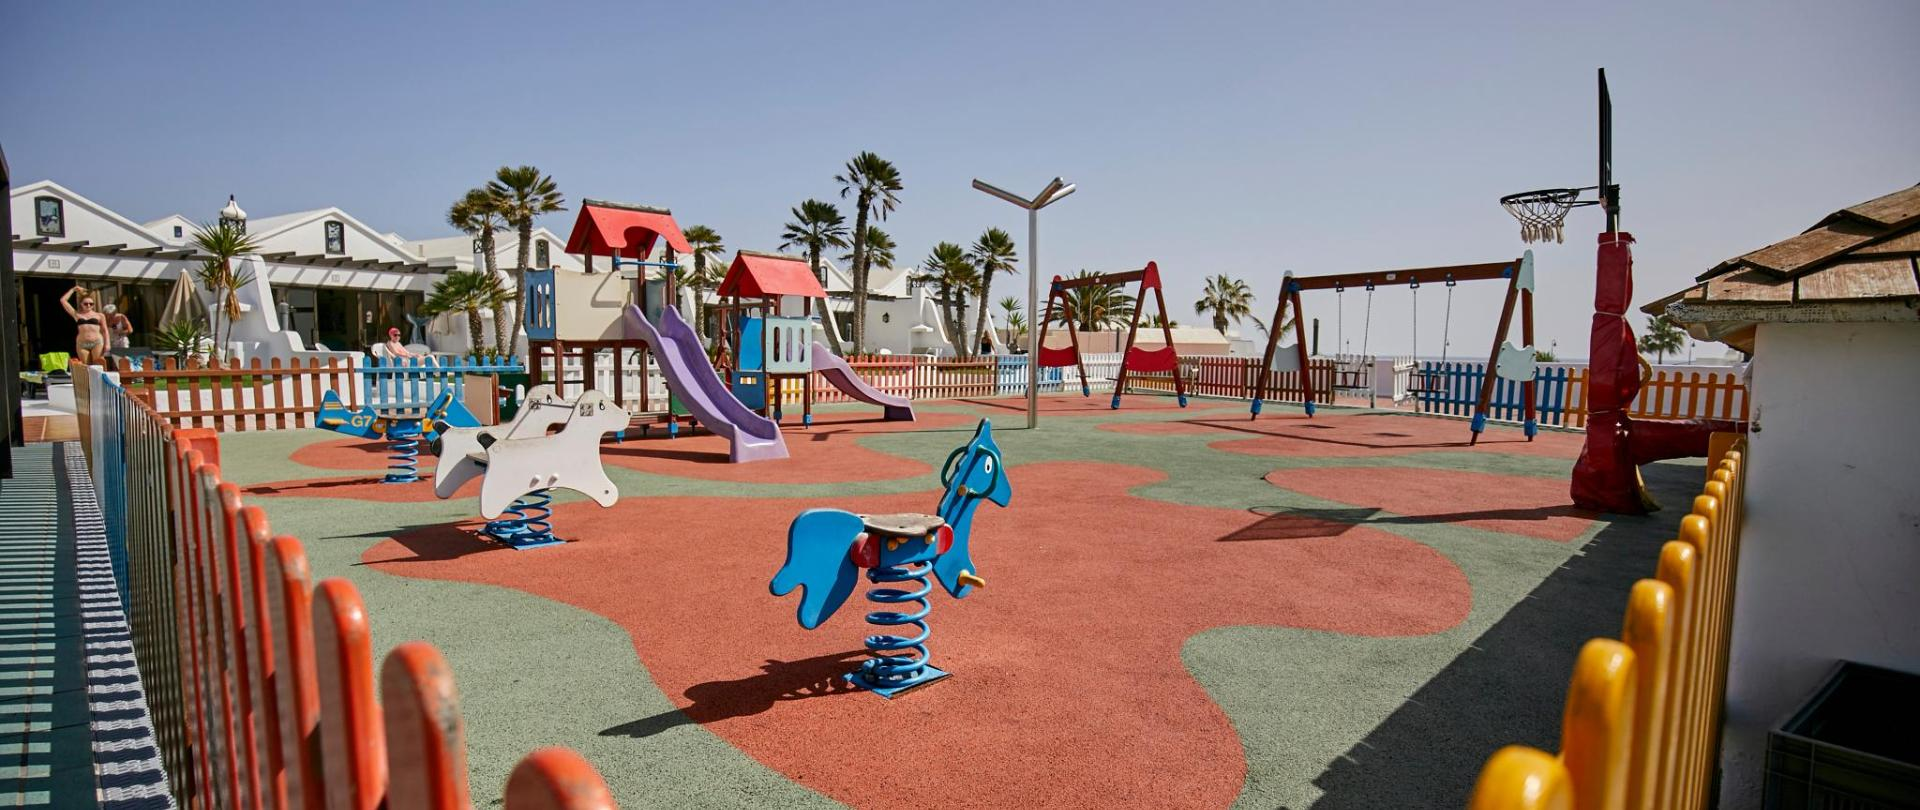 Play Ground Area.jpg